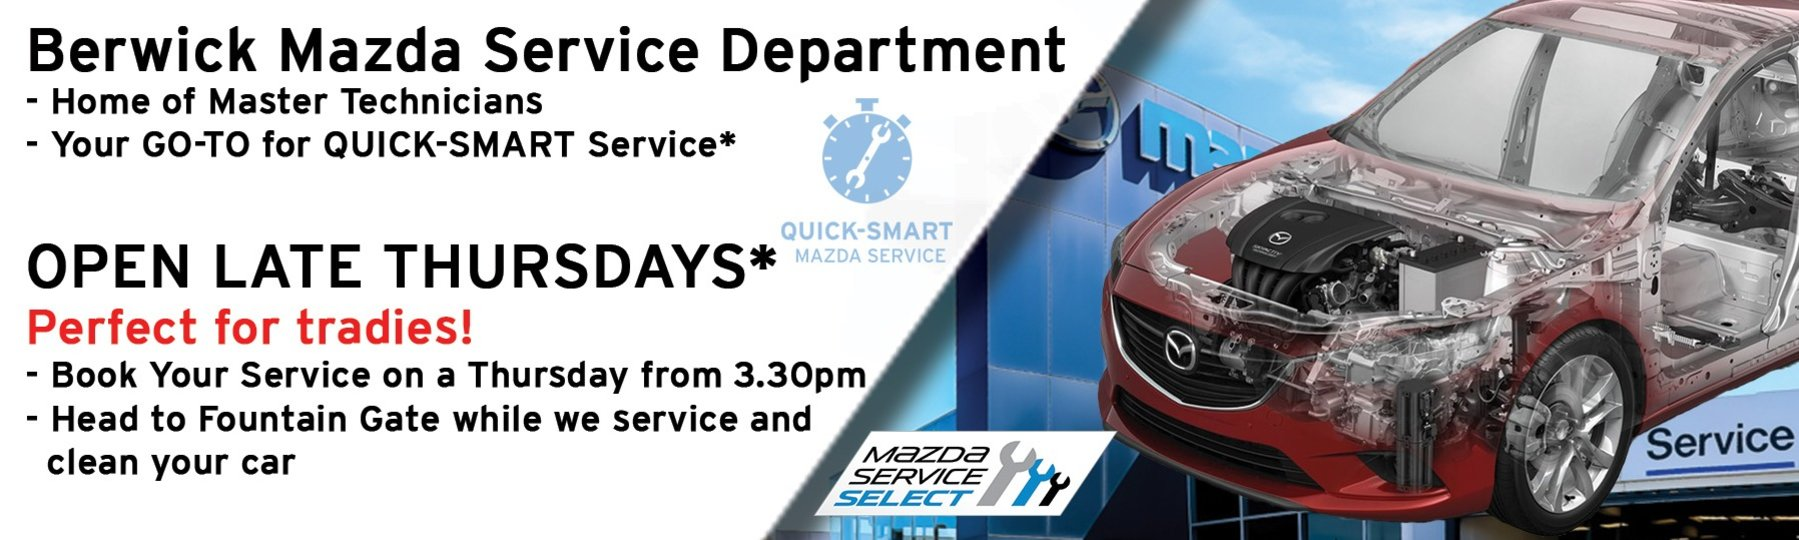 Berwick Mazda: Thursday late night Servicing